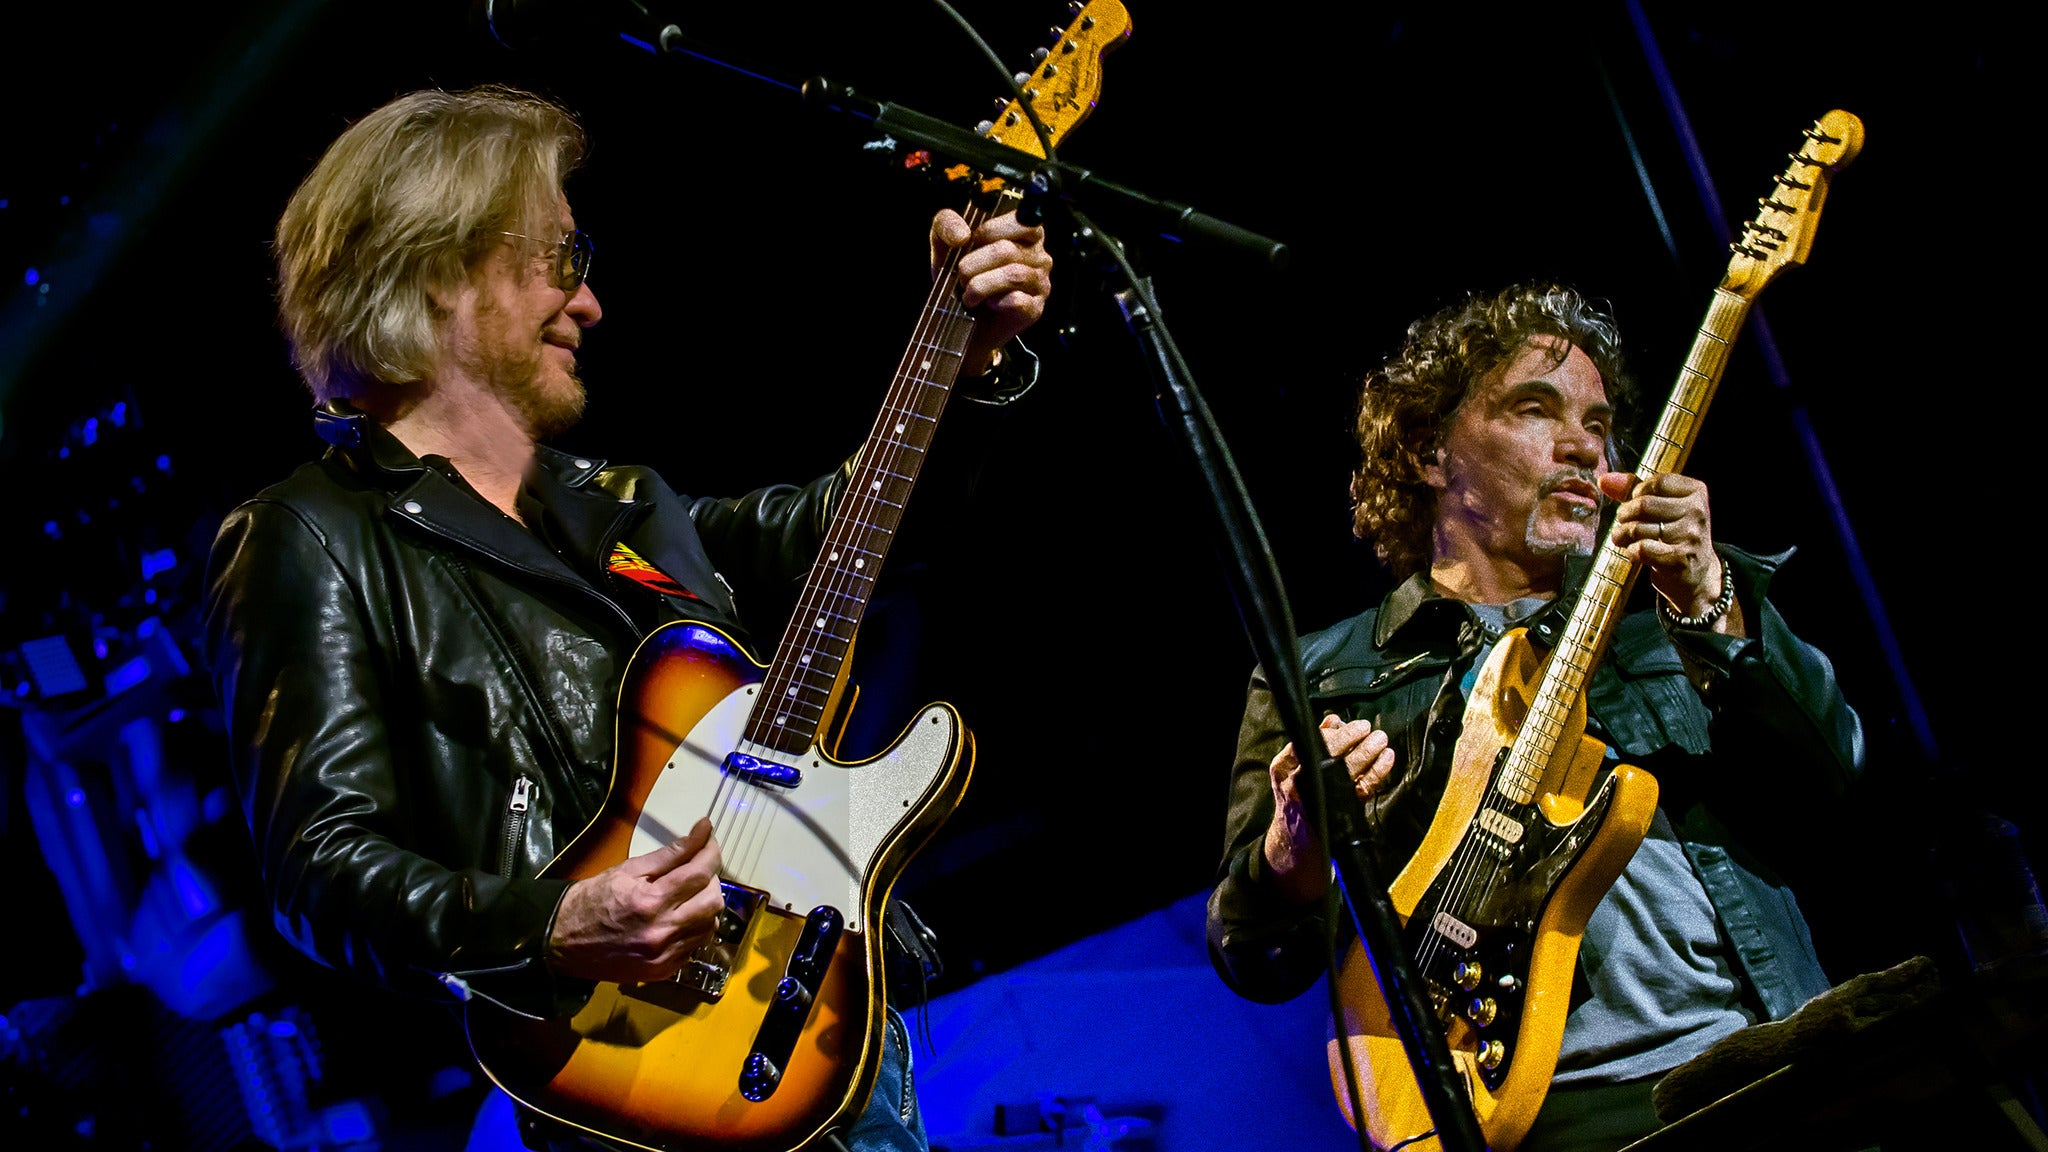 Daryl Hall & John Oates at Verizon Arena